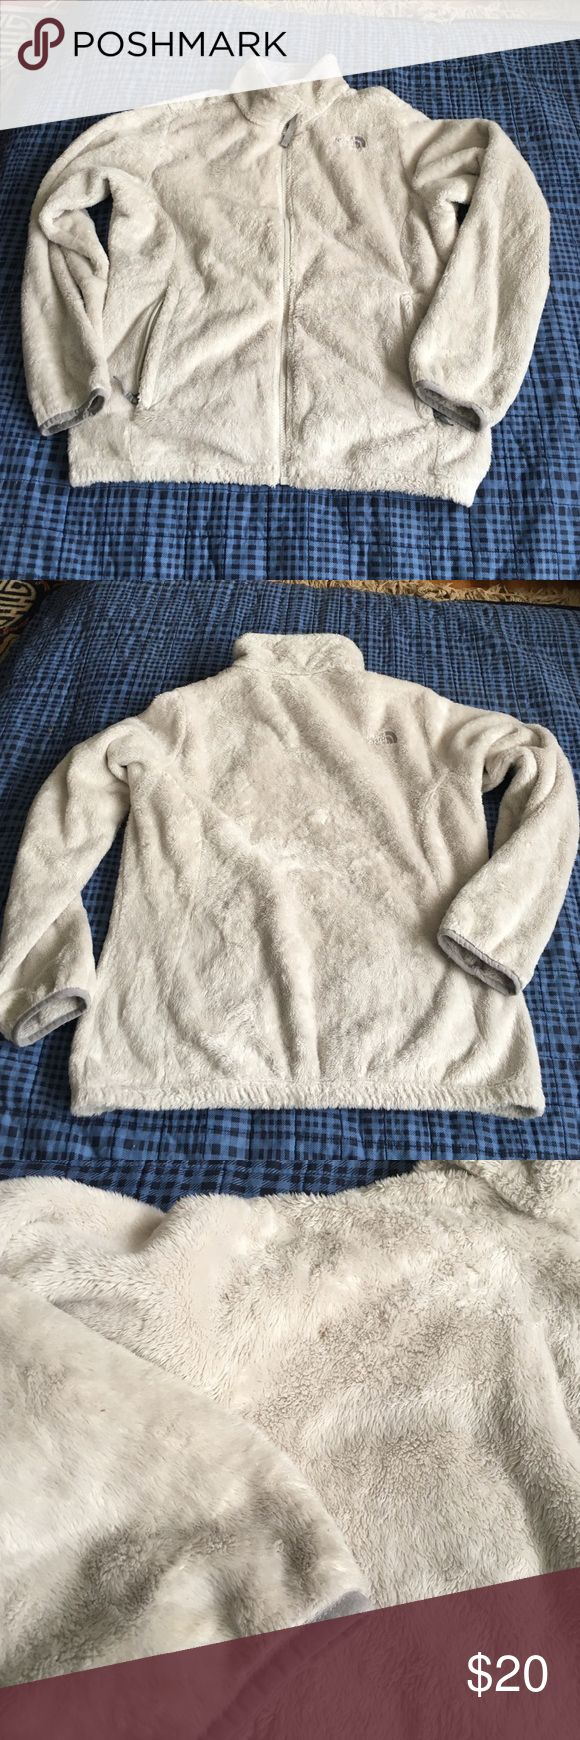 White north face jacket It needs a good cleaning there's some spots. Xl girls 18 or fits women's s-m North Face Jackets & Coats